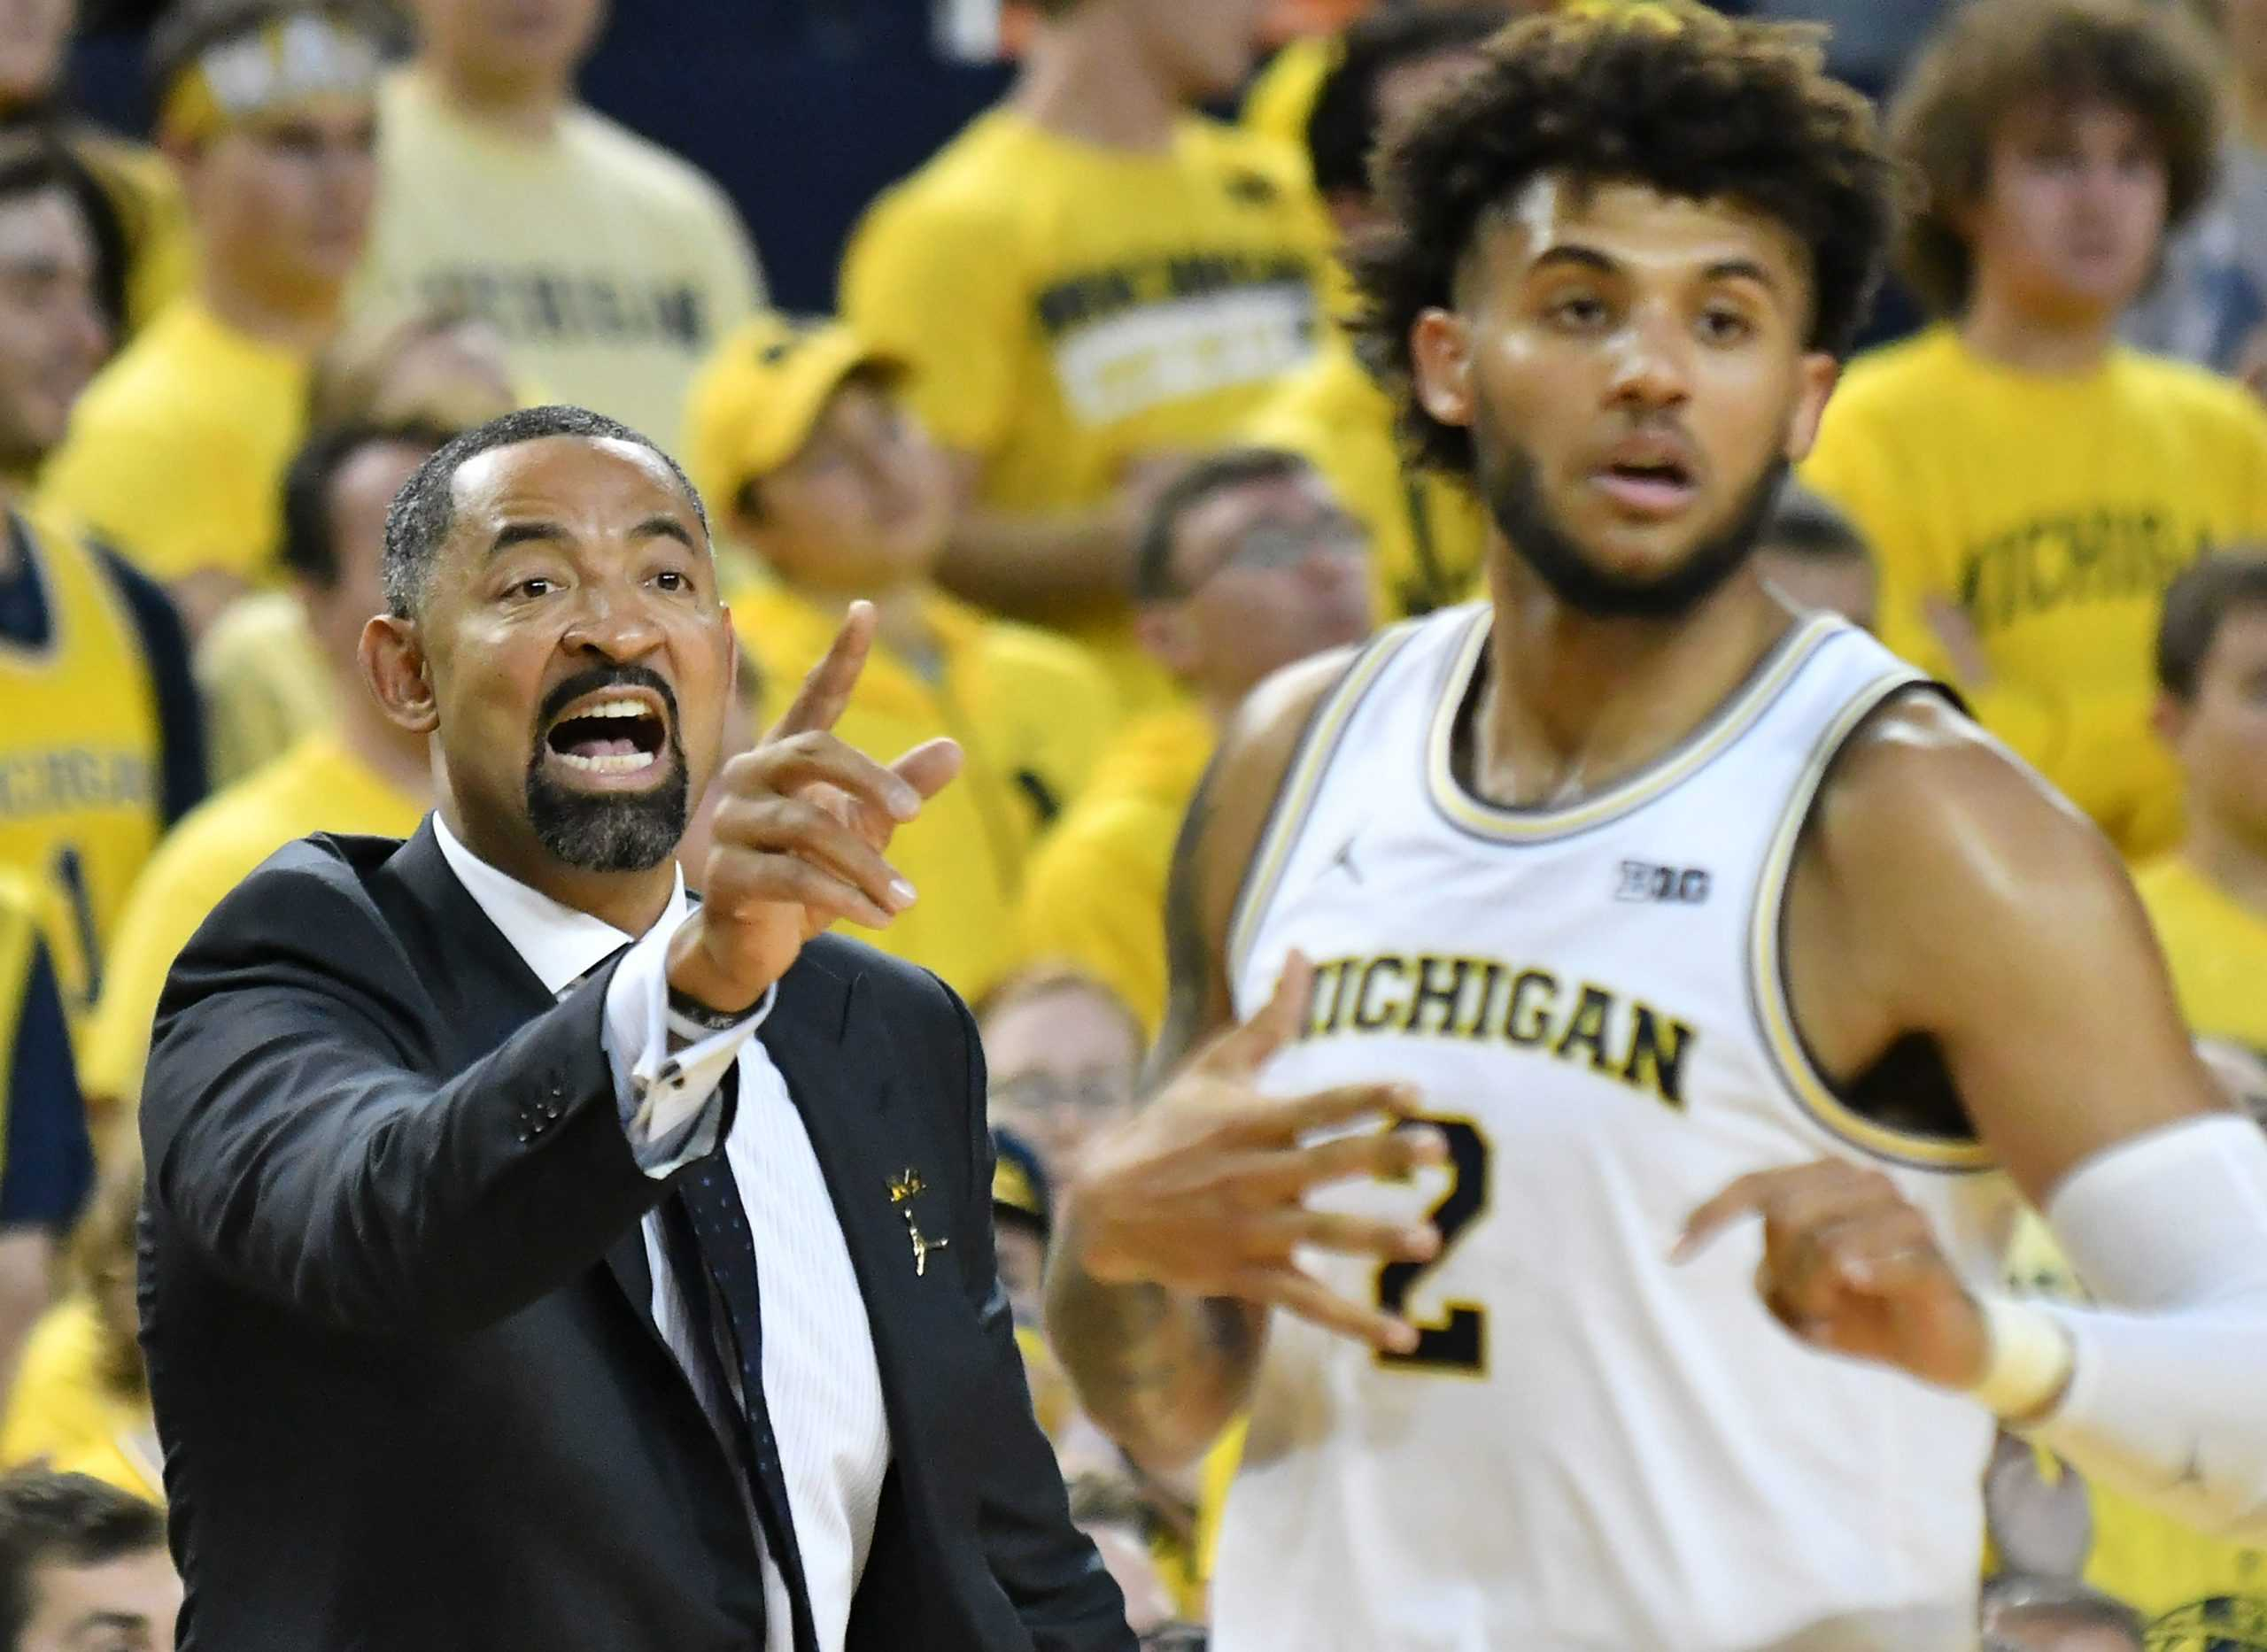 Michigan Basketball: A Force to Be Reckoned With